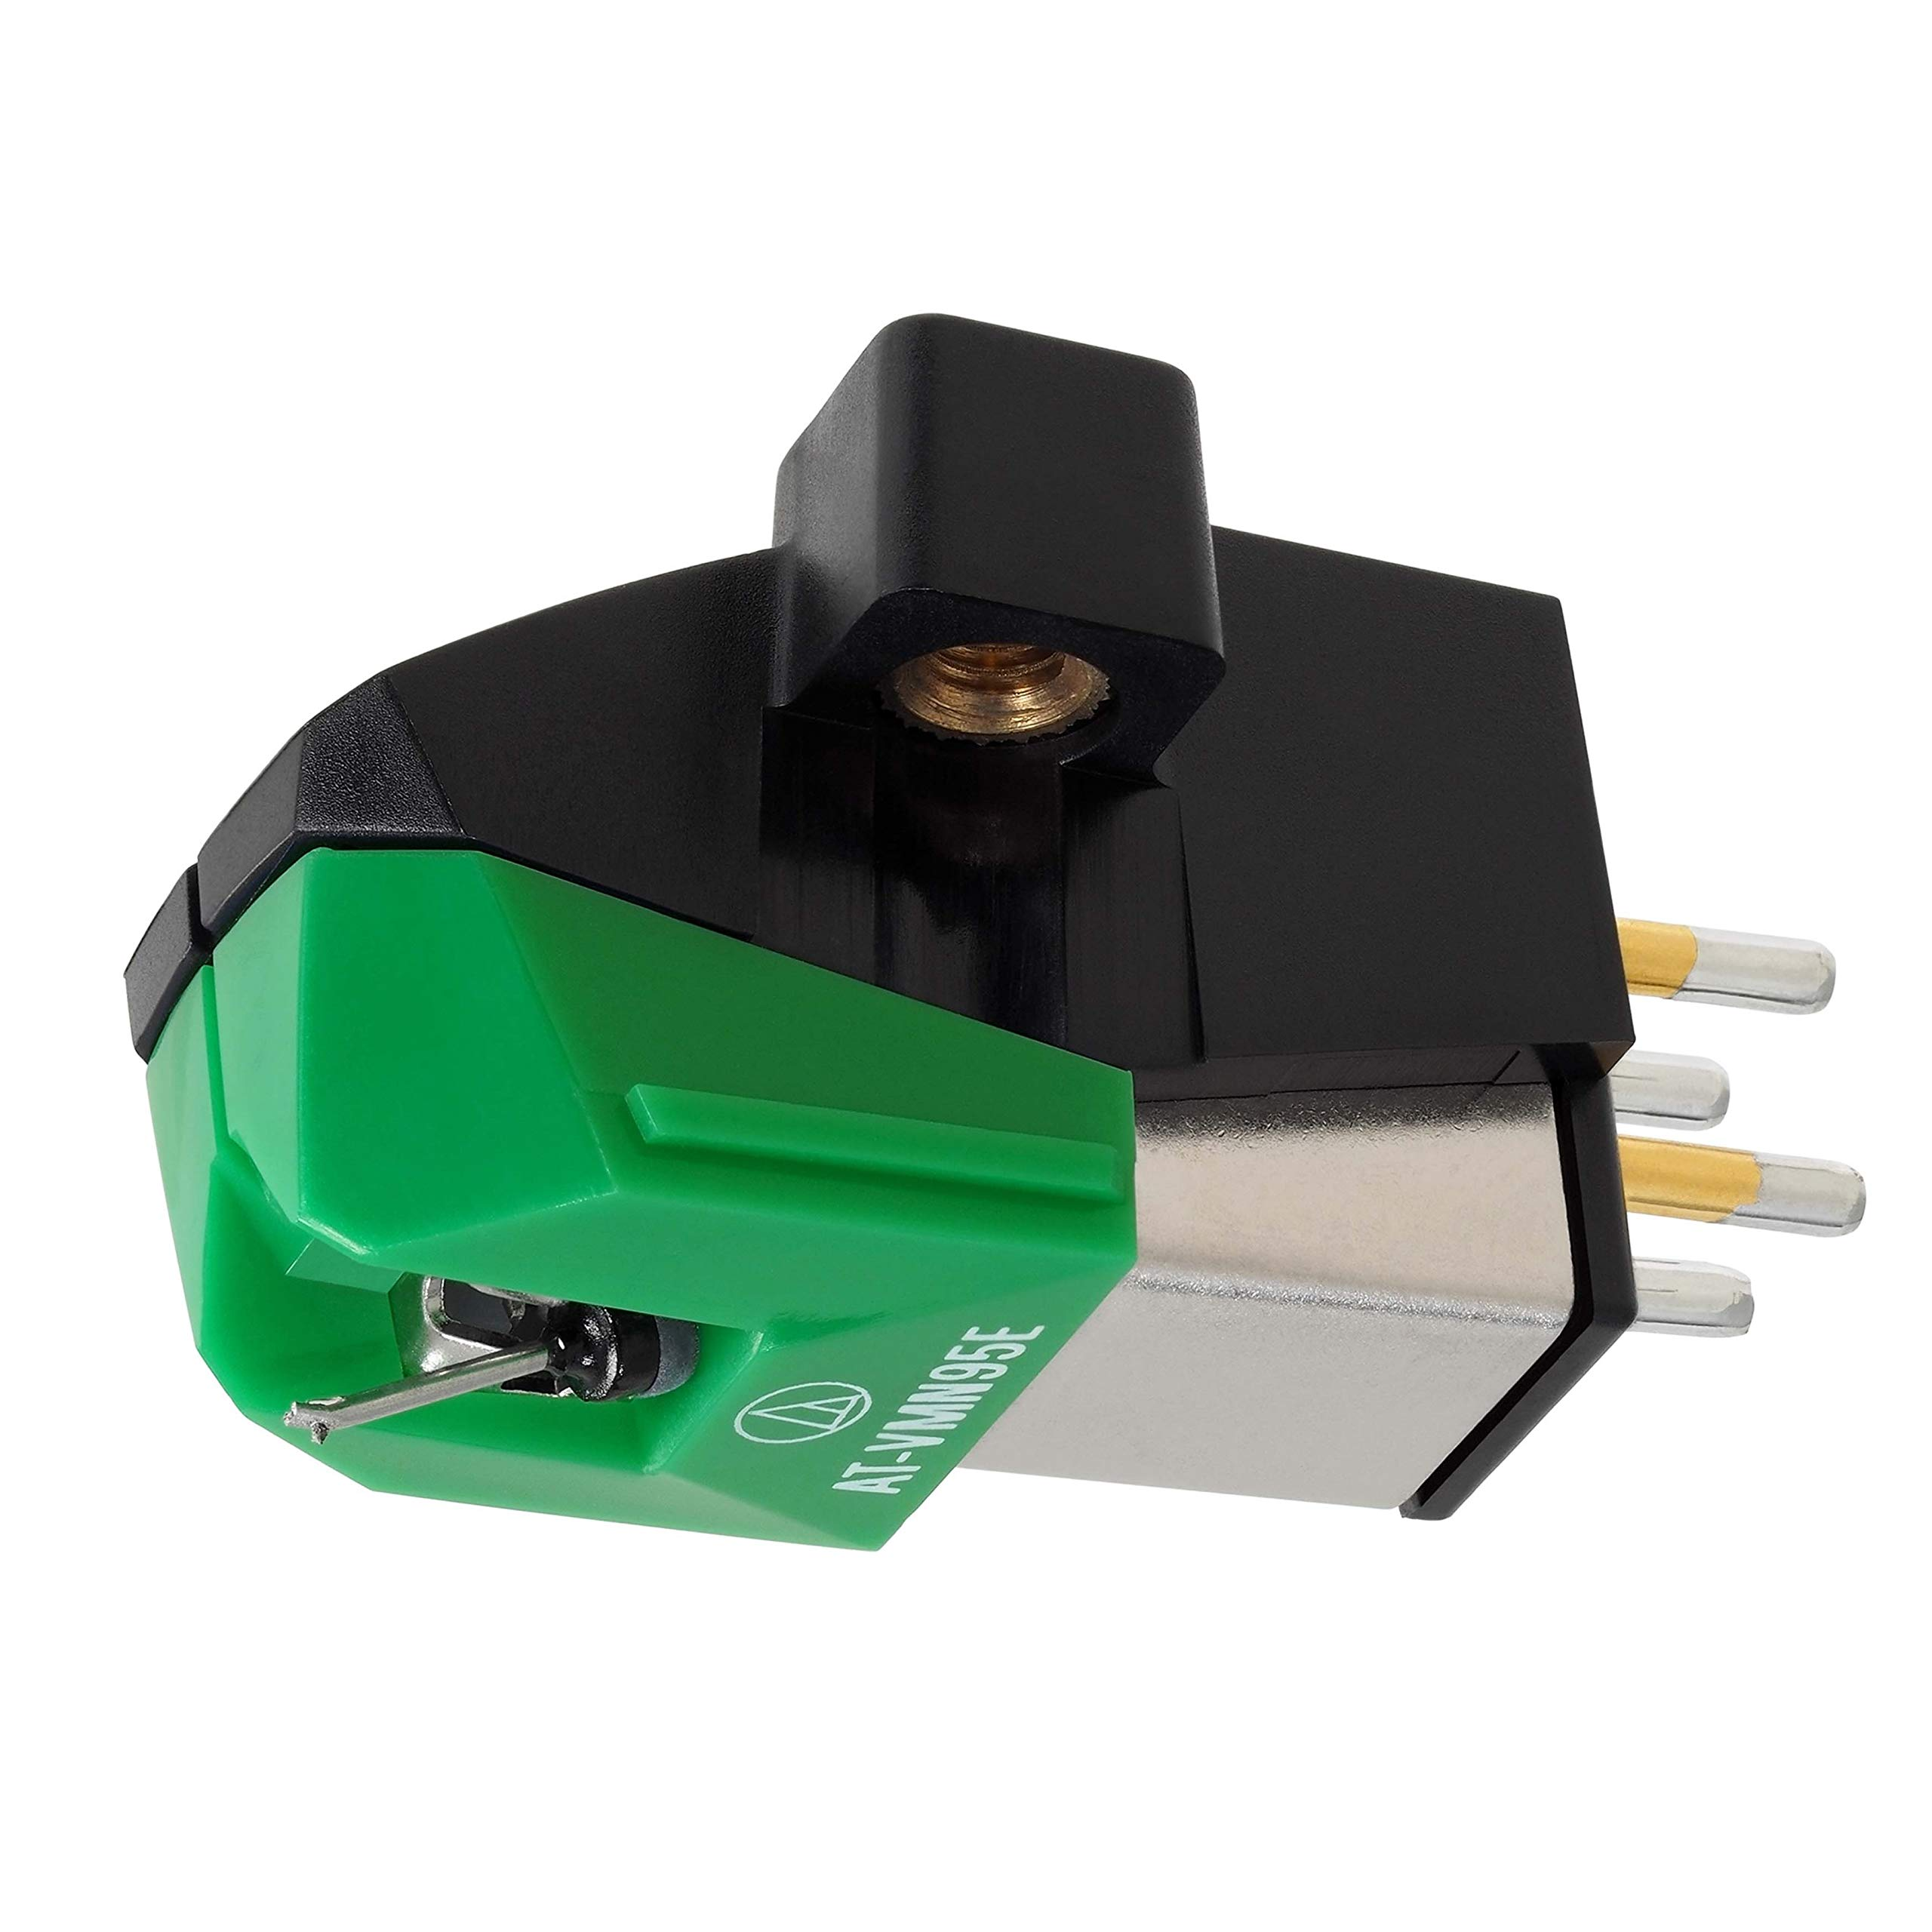 Audio-Technica AT-VM95E Dual Moving Magnet Turntable Cartridge by Audio-Technica